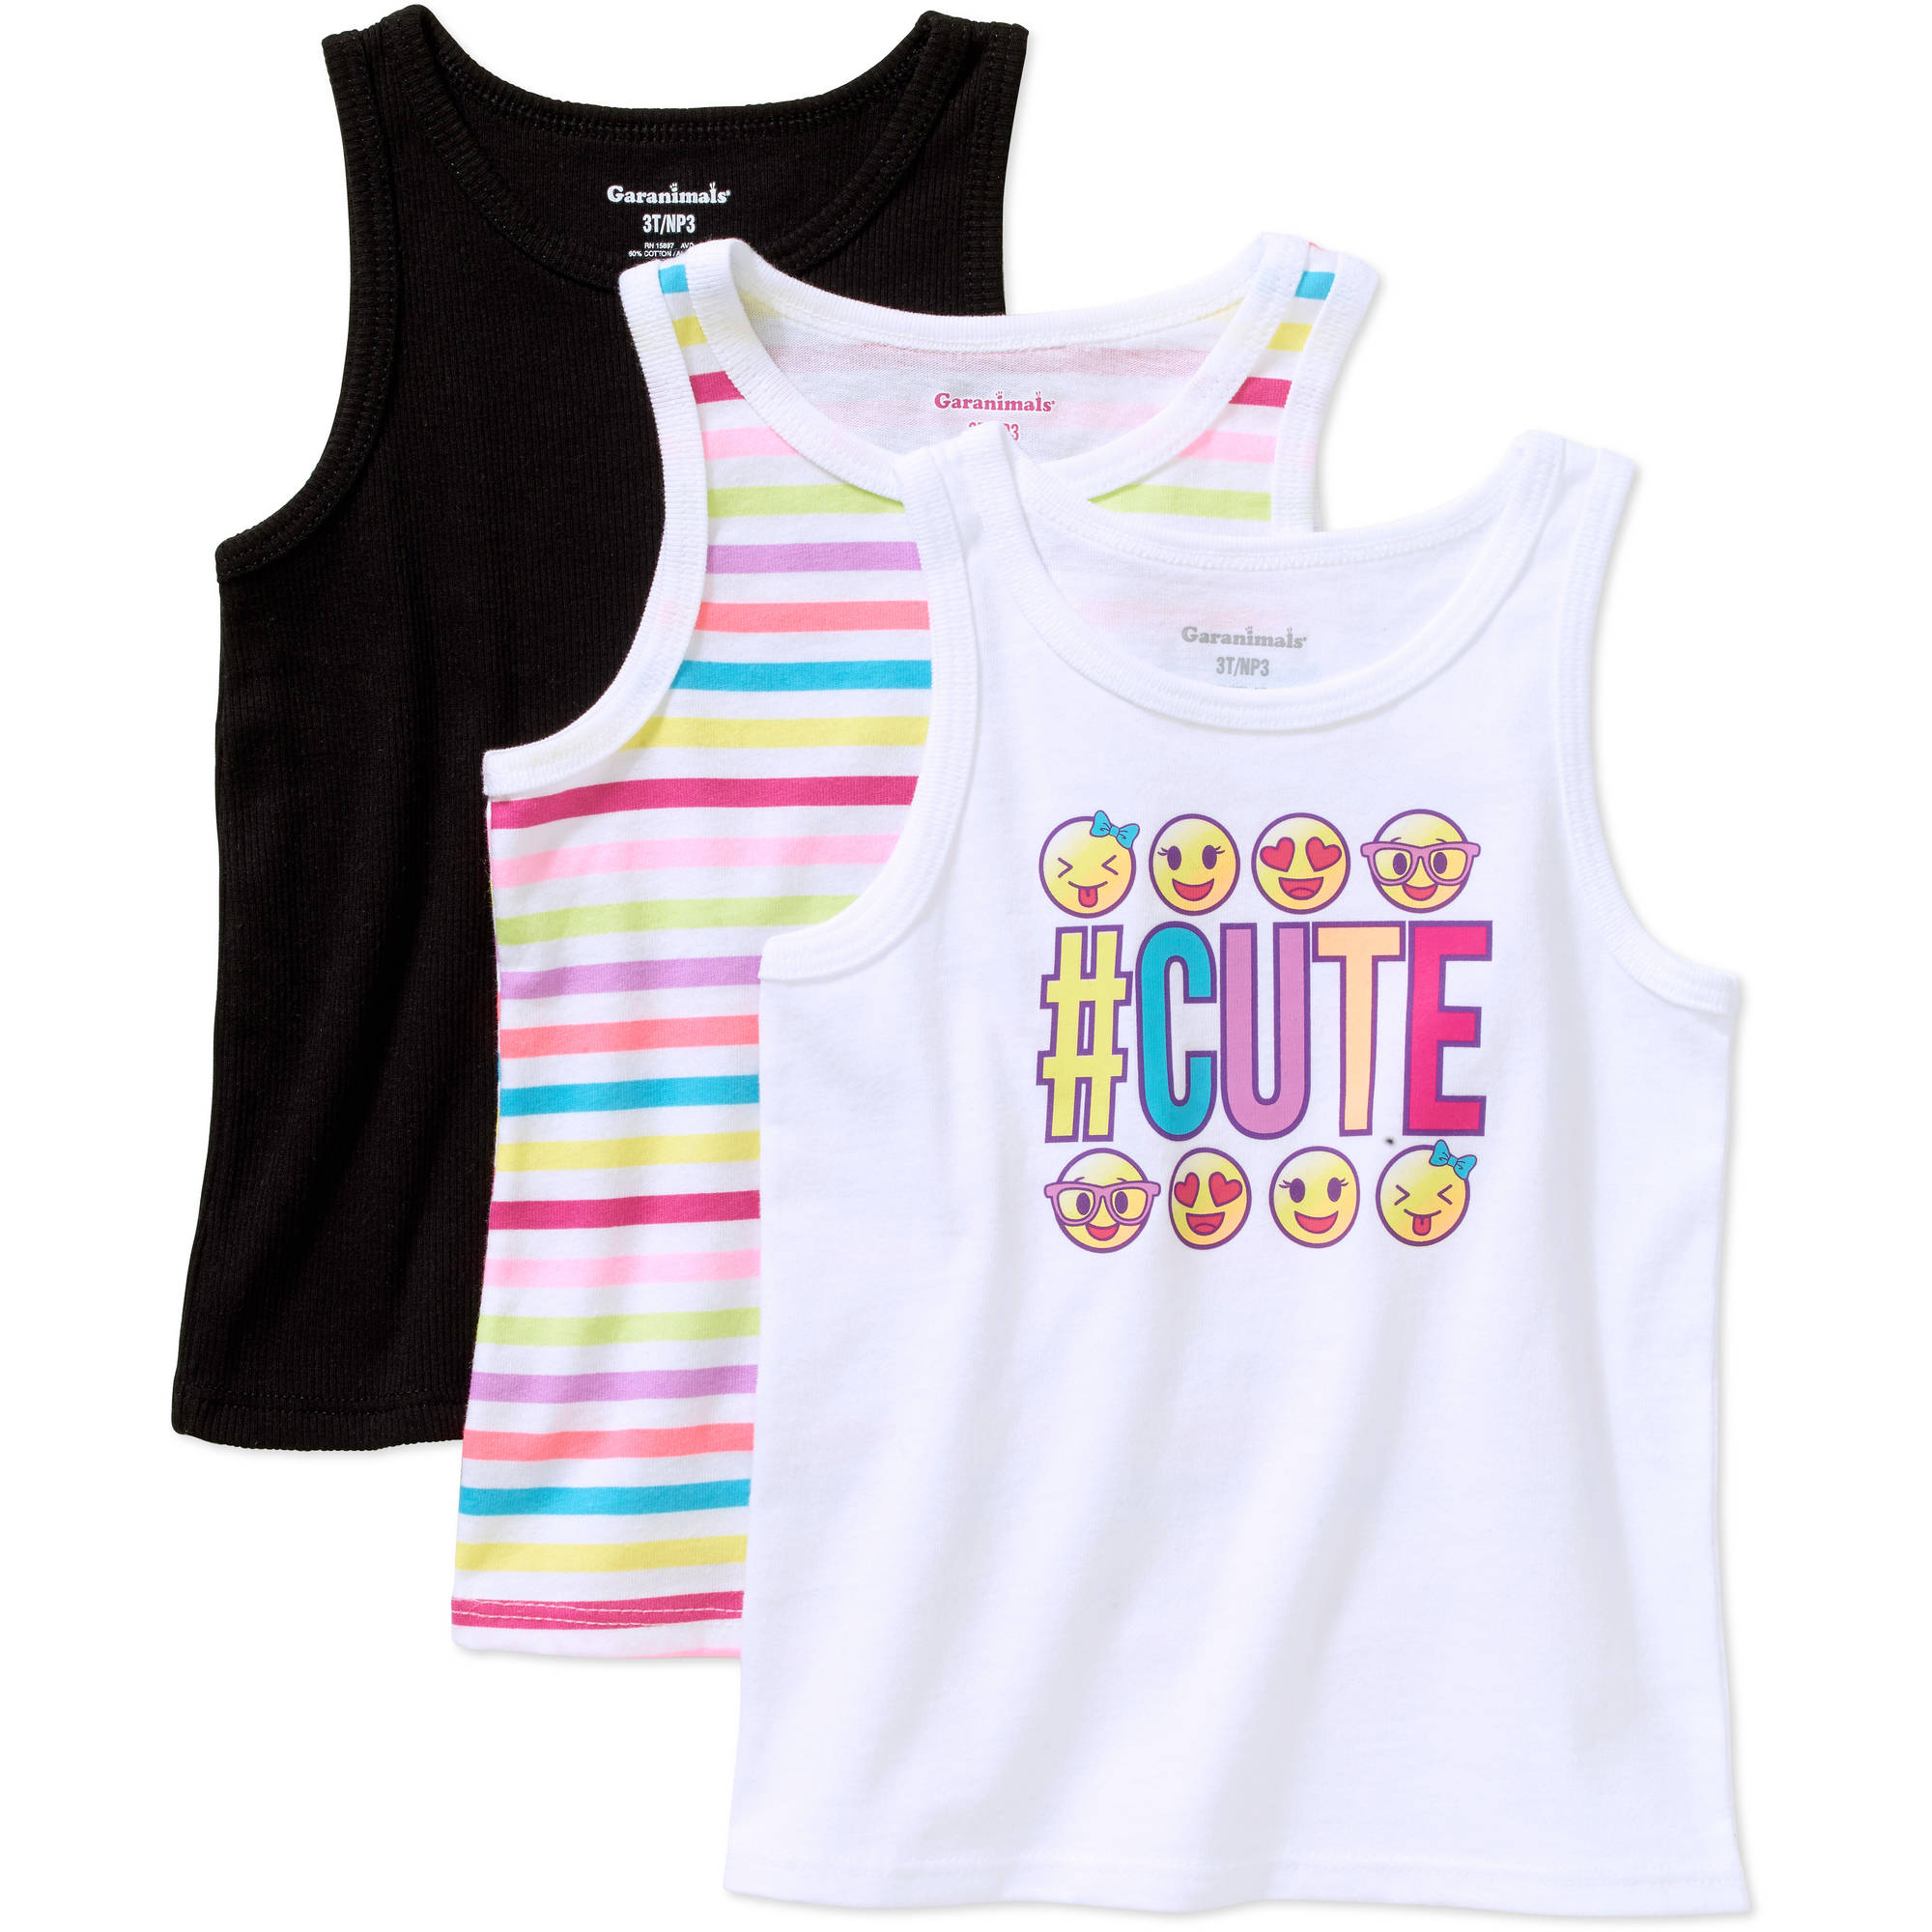 Garanimals Baby Toddler Girl Assorted Essential Summer Tanks 3-pack